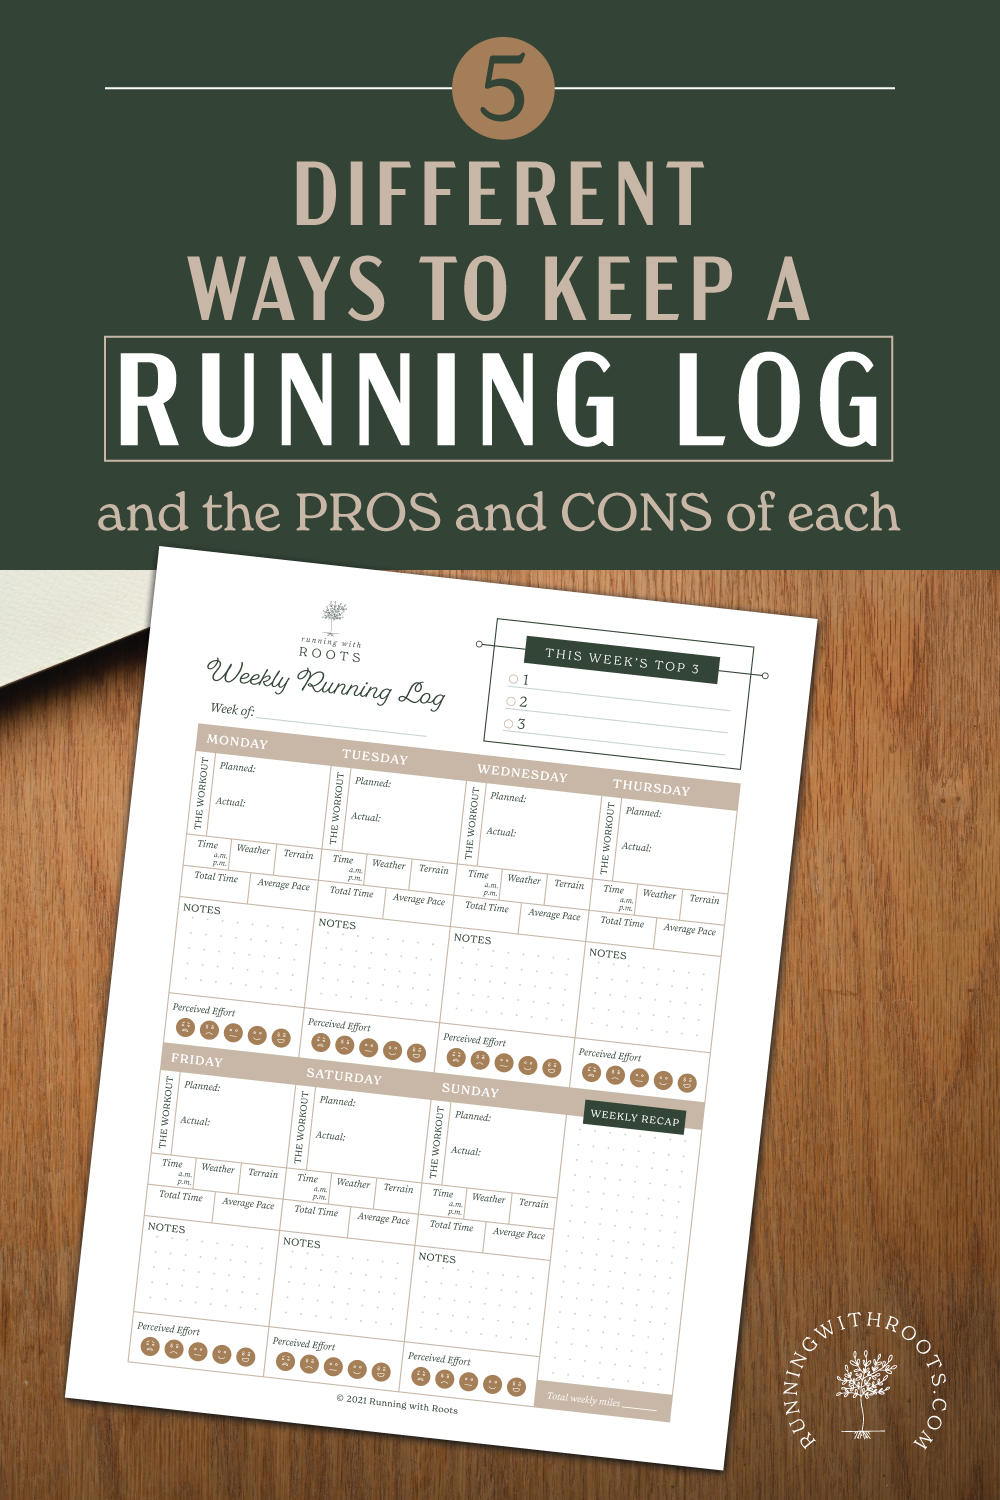 5 Different ways to keep a running log